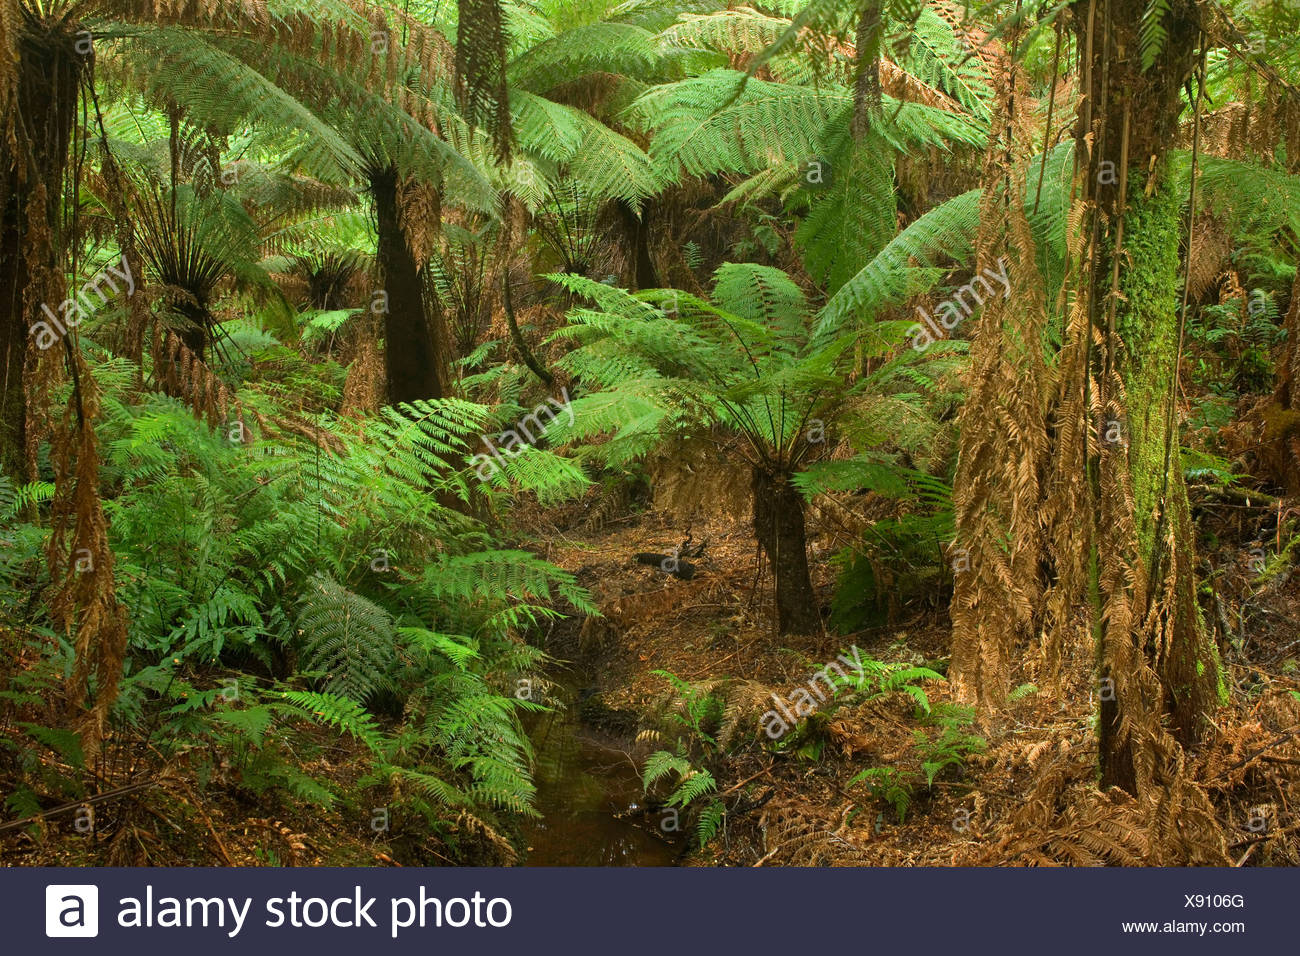 Temperate rainforest - brook flows through a gully with lots of treefern in a lush temperate rainforest , Australia, Victoria, Great Ocean Road, Great Otways National Park - Stock Image